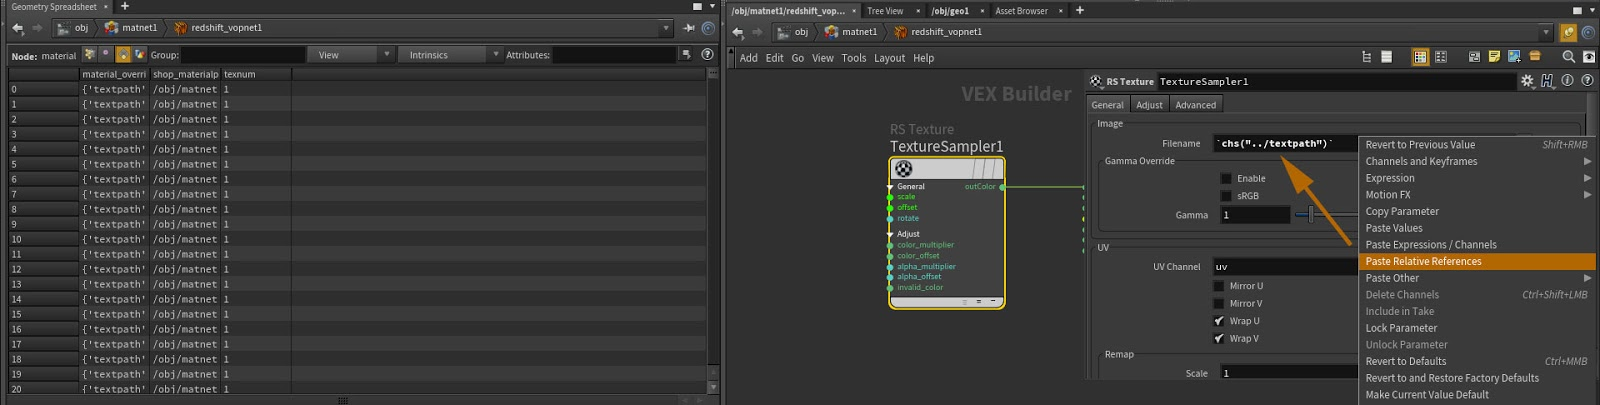 RedShift Material Override | opinputpath